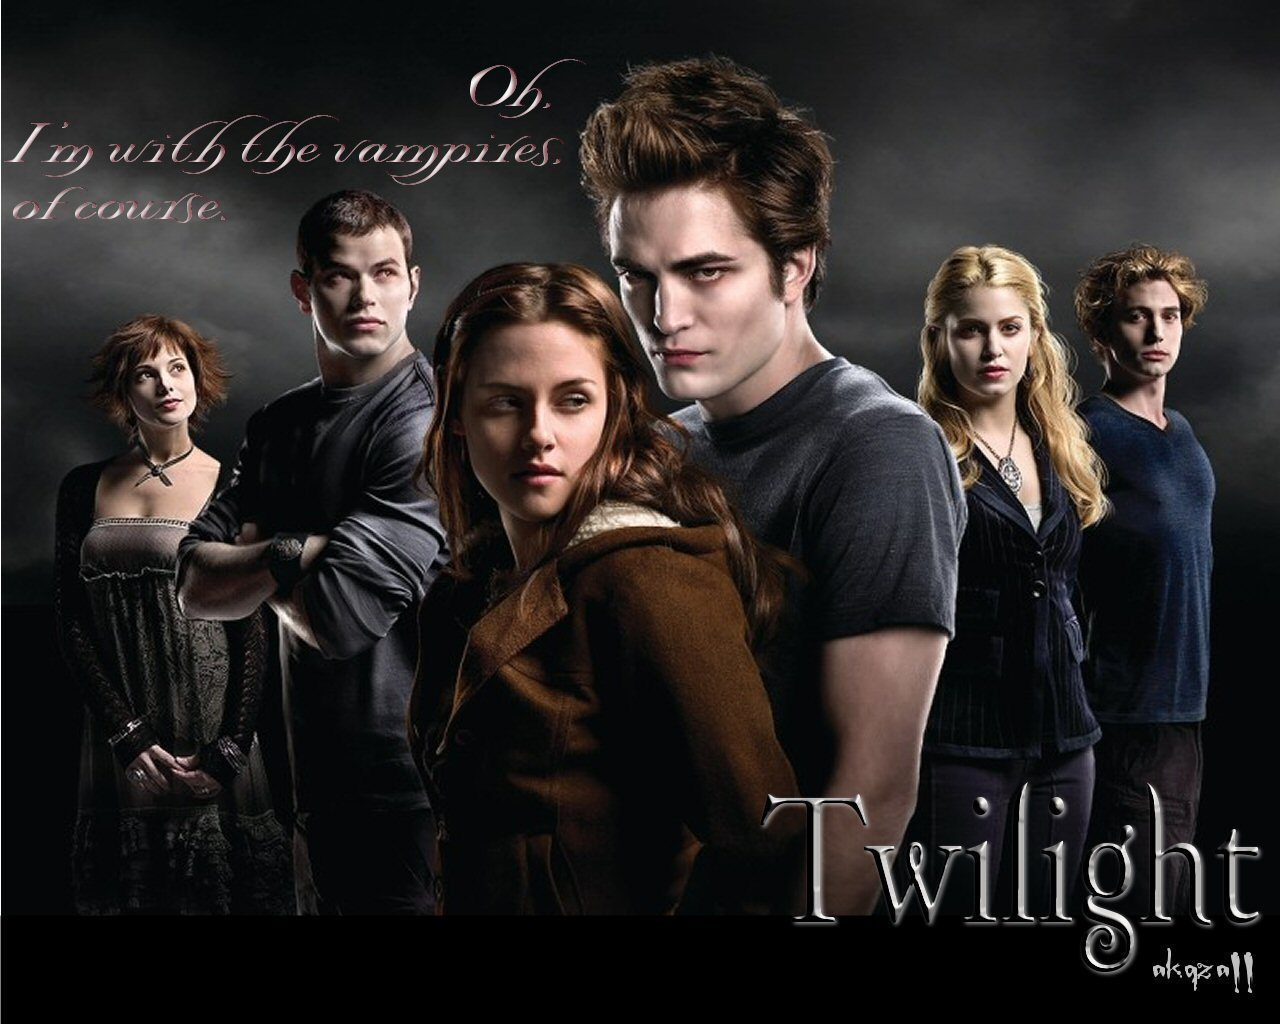 http://images1.fanpop.com/images/image_uploads/I-m-with-the-vampires-twilight-series-1213759_1280_1024.jpg